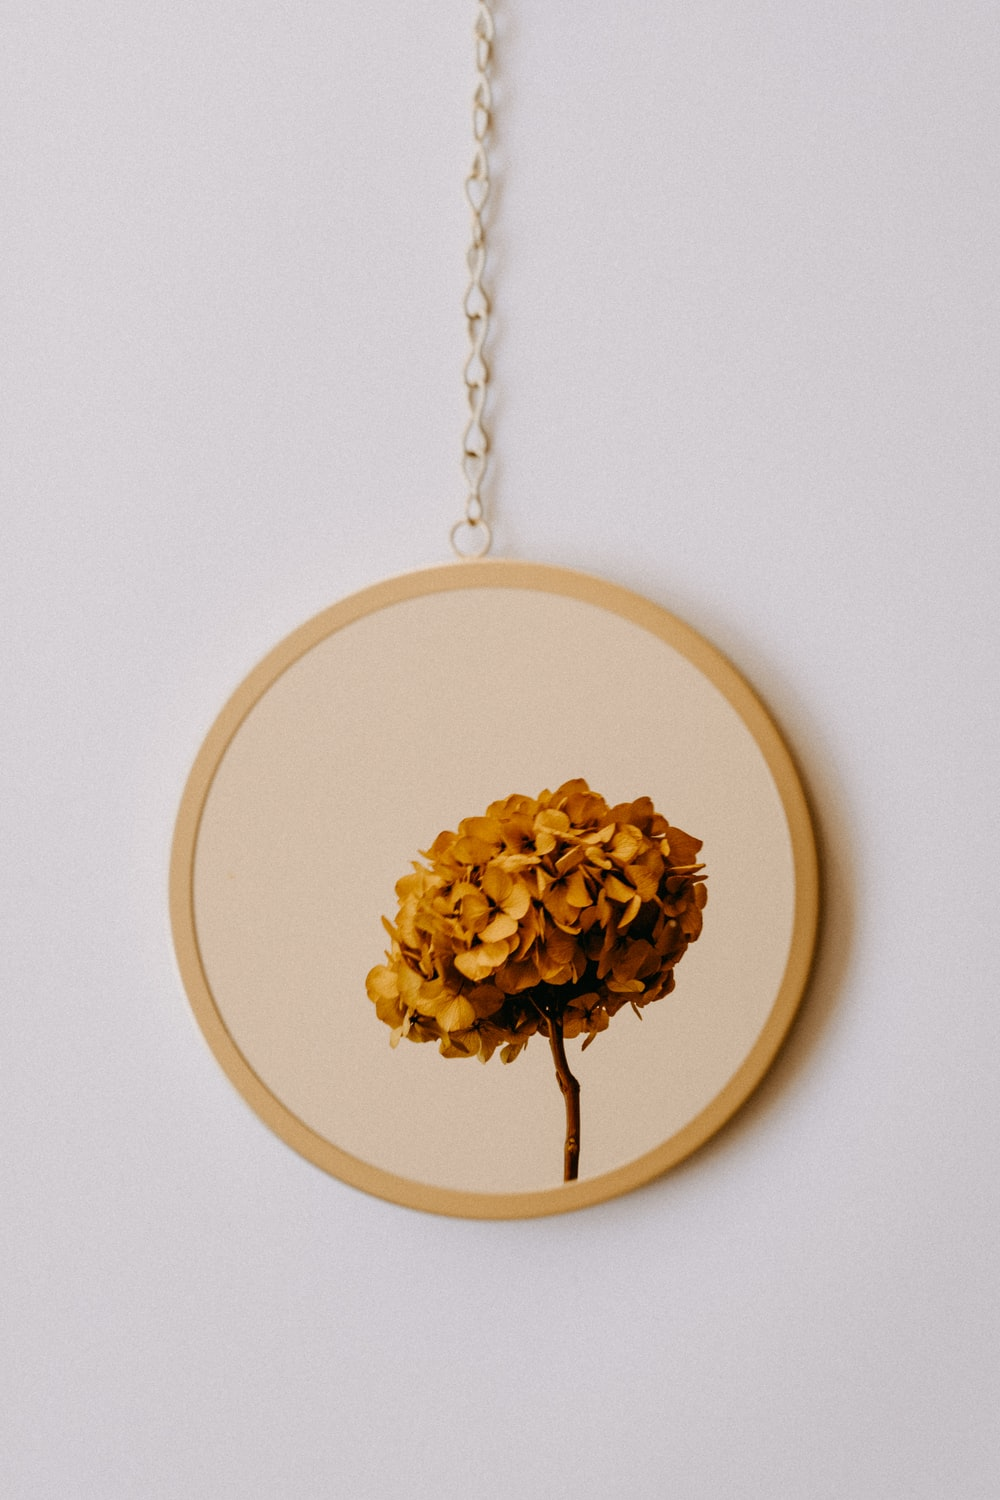 brown and white floral round hanging decor